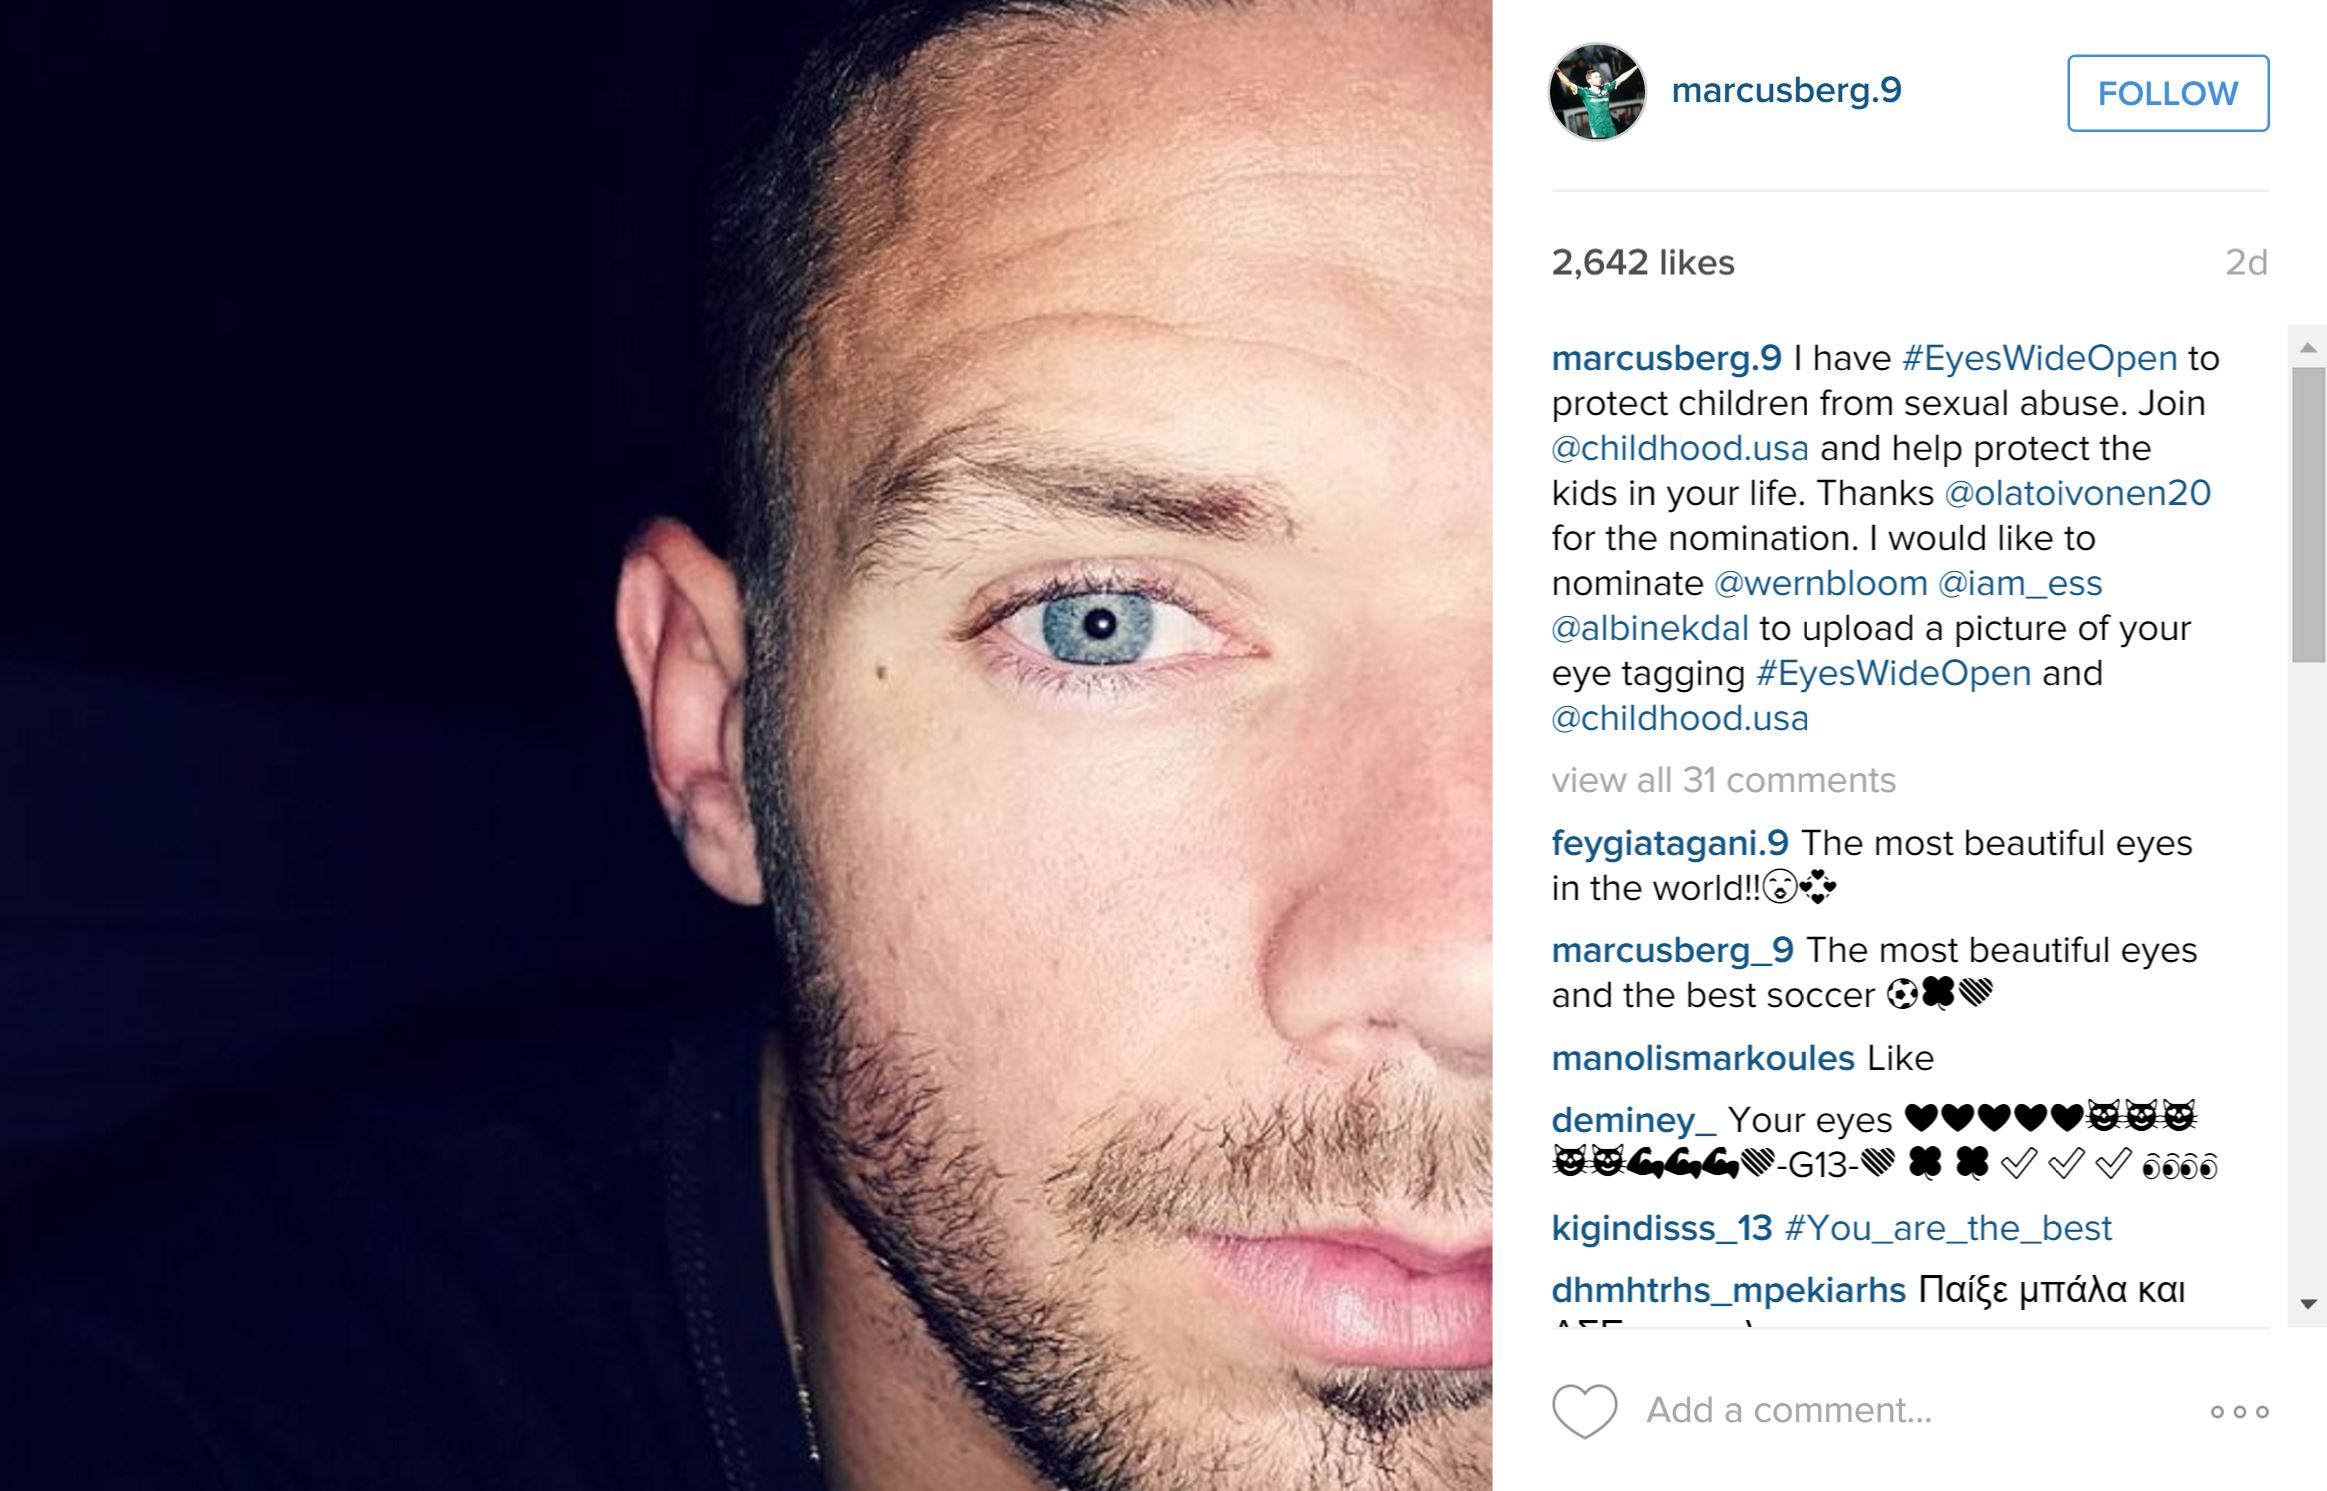 #EyesWideOpen Post by Soccer Star, Marcus Berg